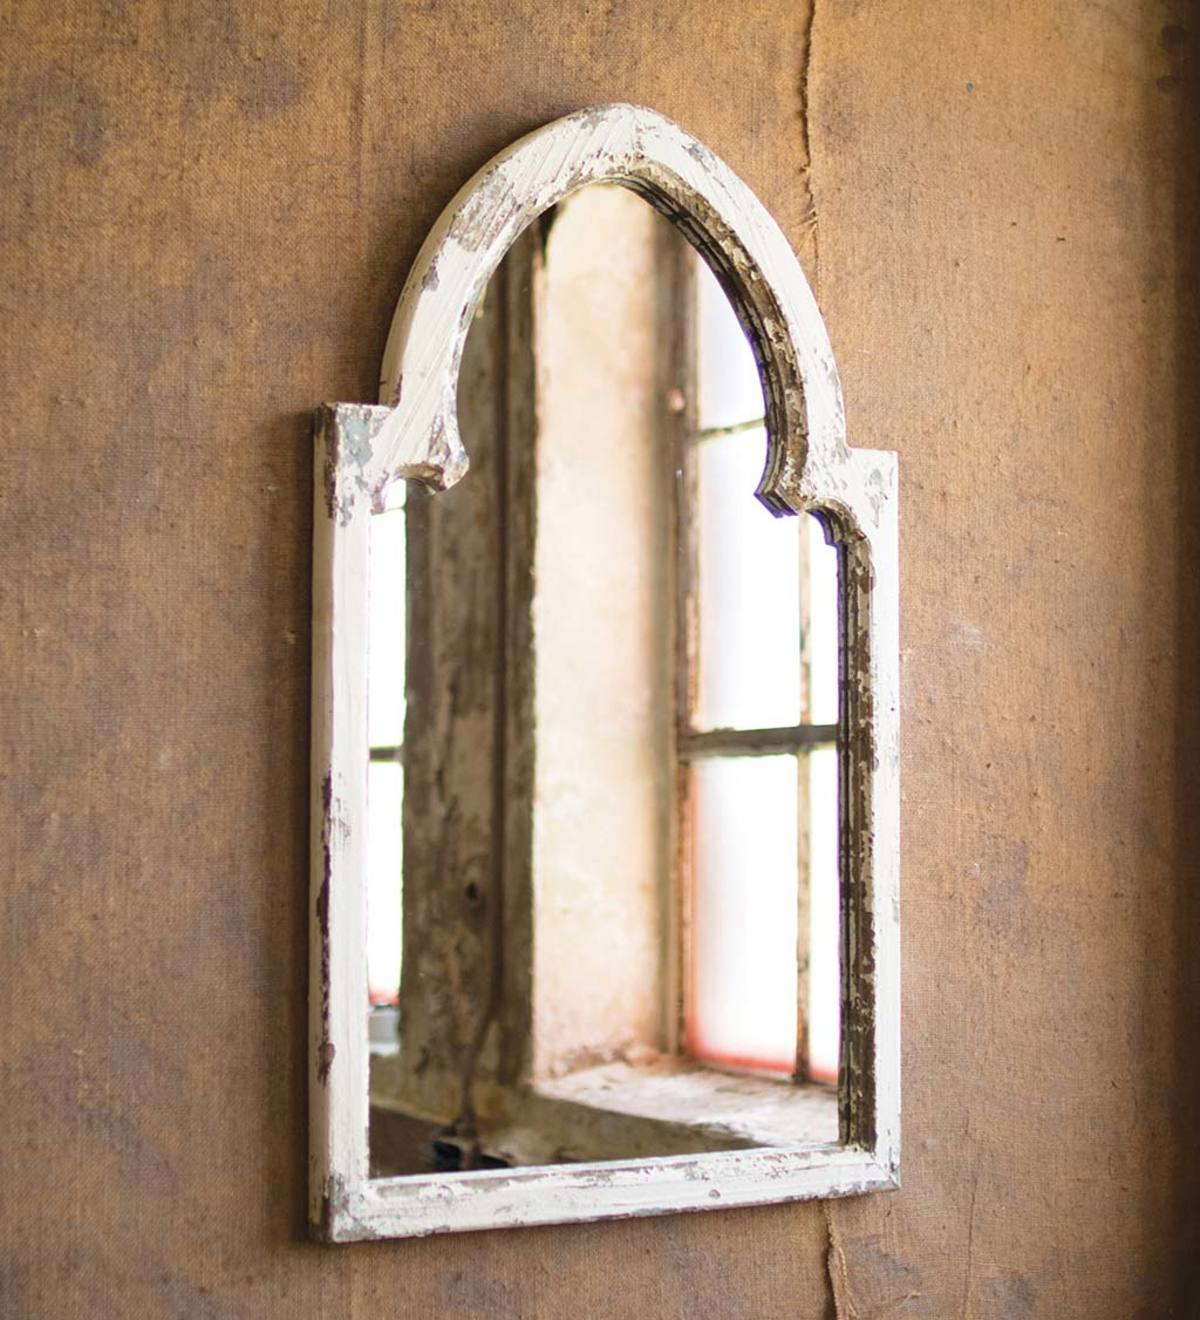 Rustic White Wood Arched Framed Mirror with Gold Accent